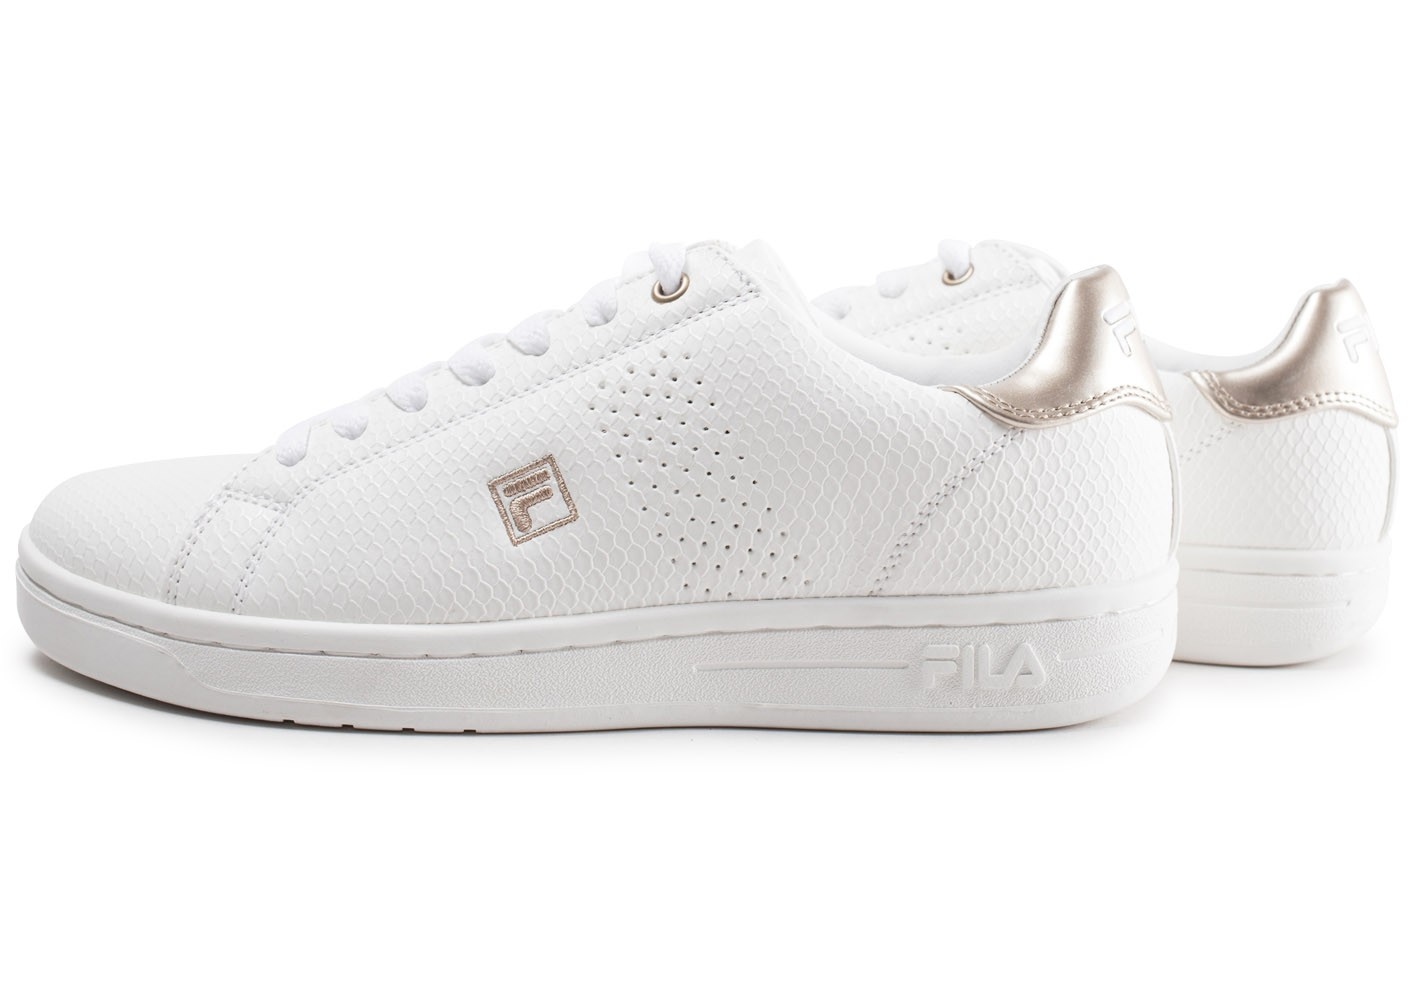 Fila Crosscourt Or Chaussures Femme Baskets Et Blanche O0nwkP